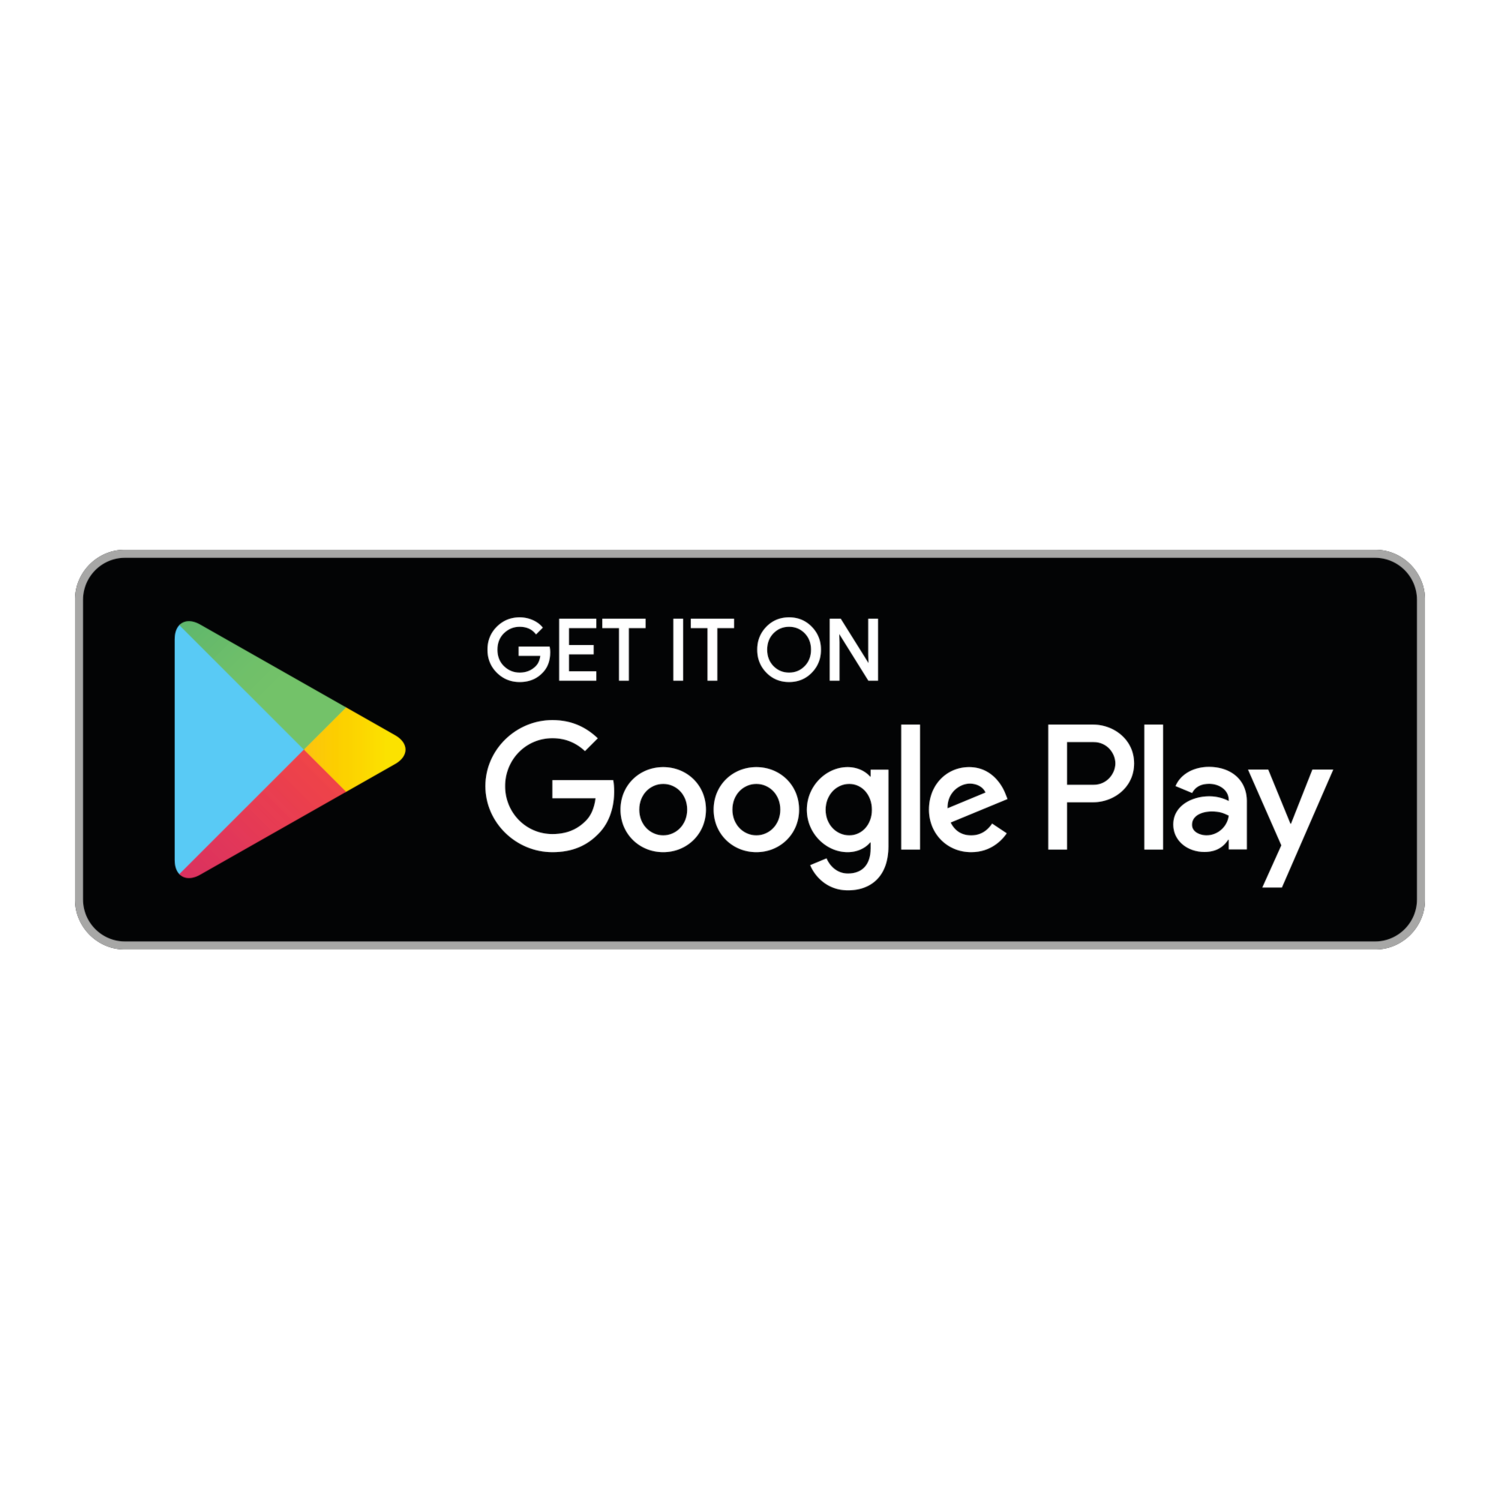 Google Play App Store Android.